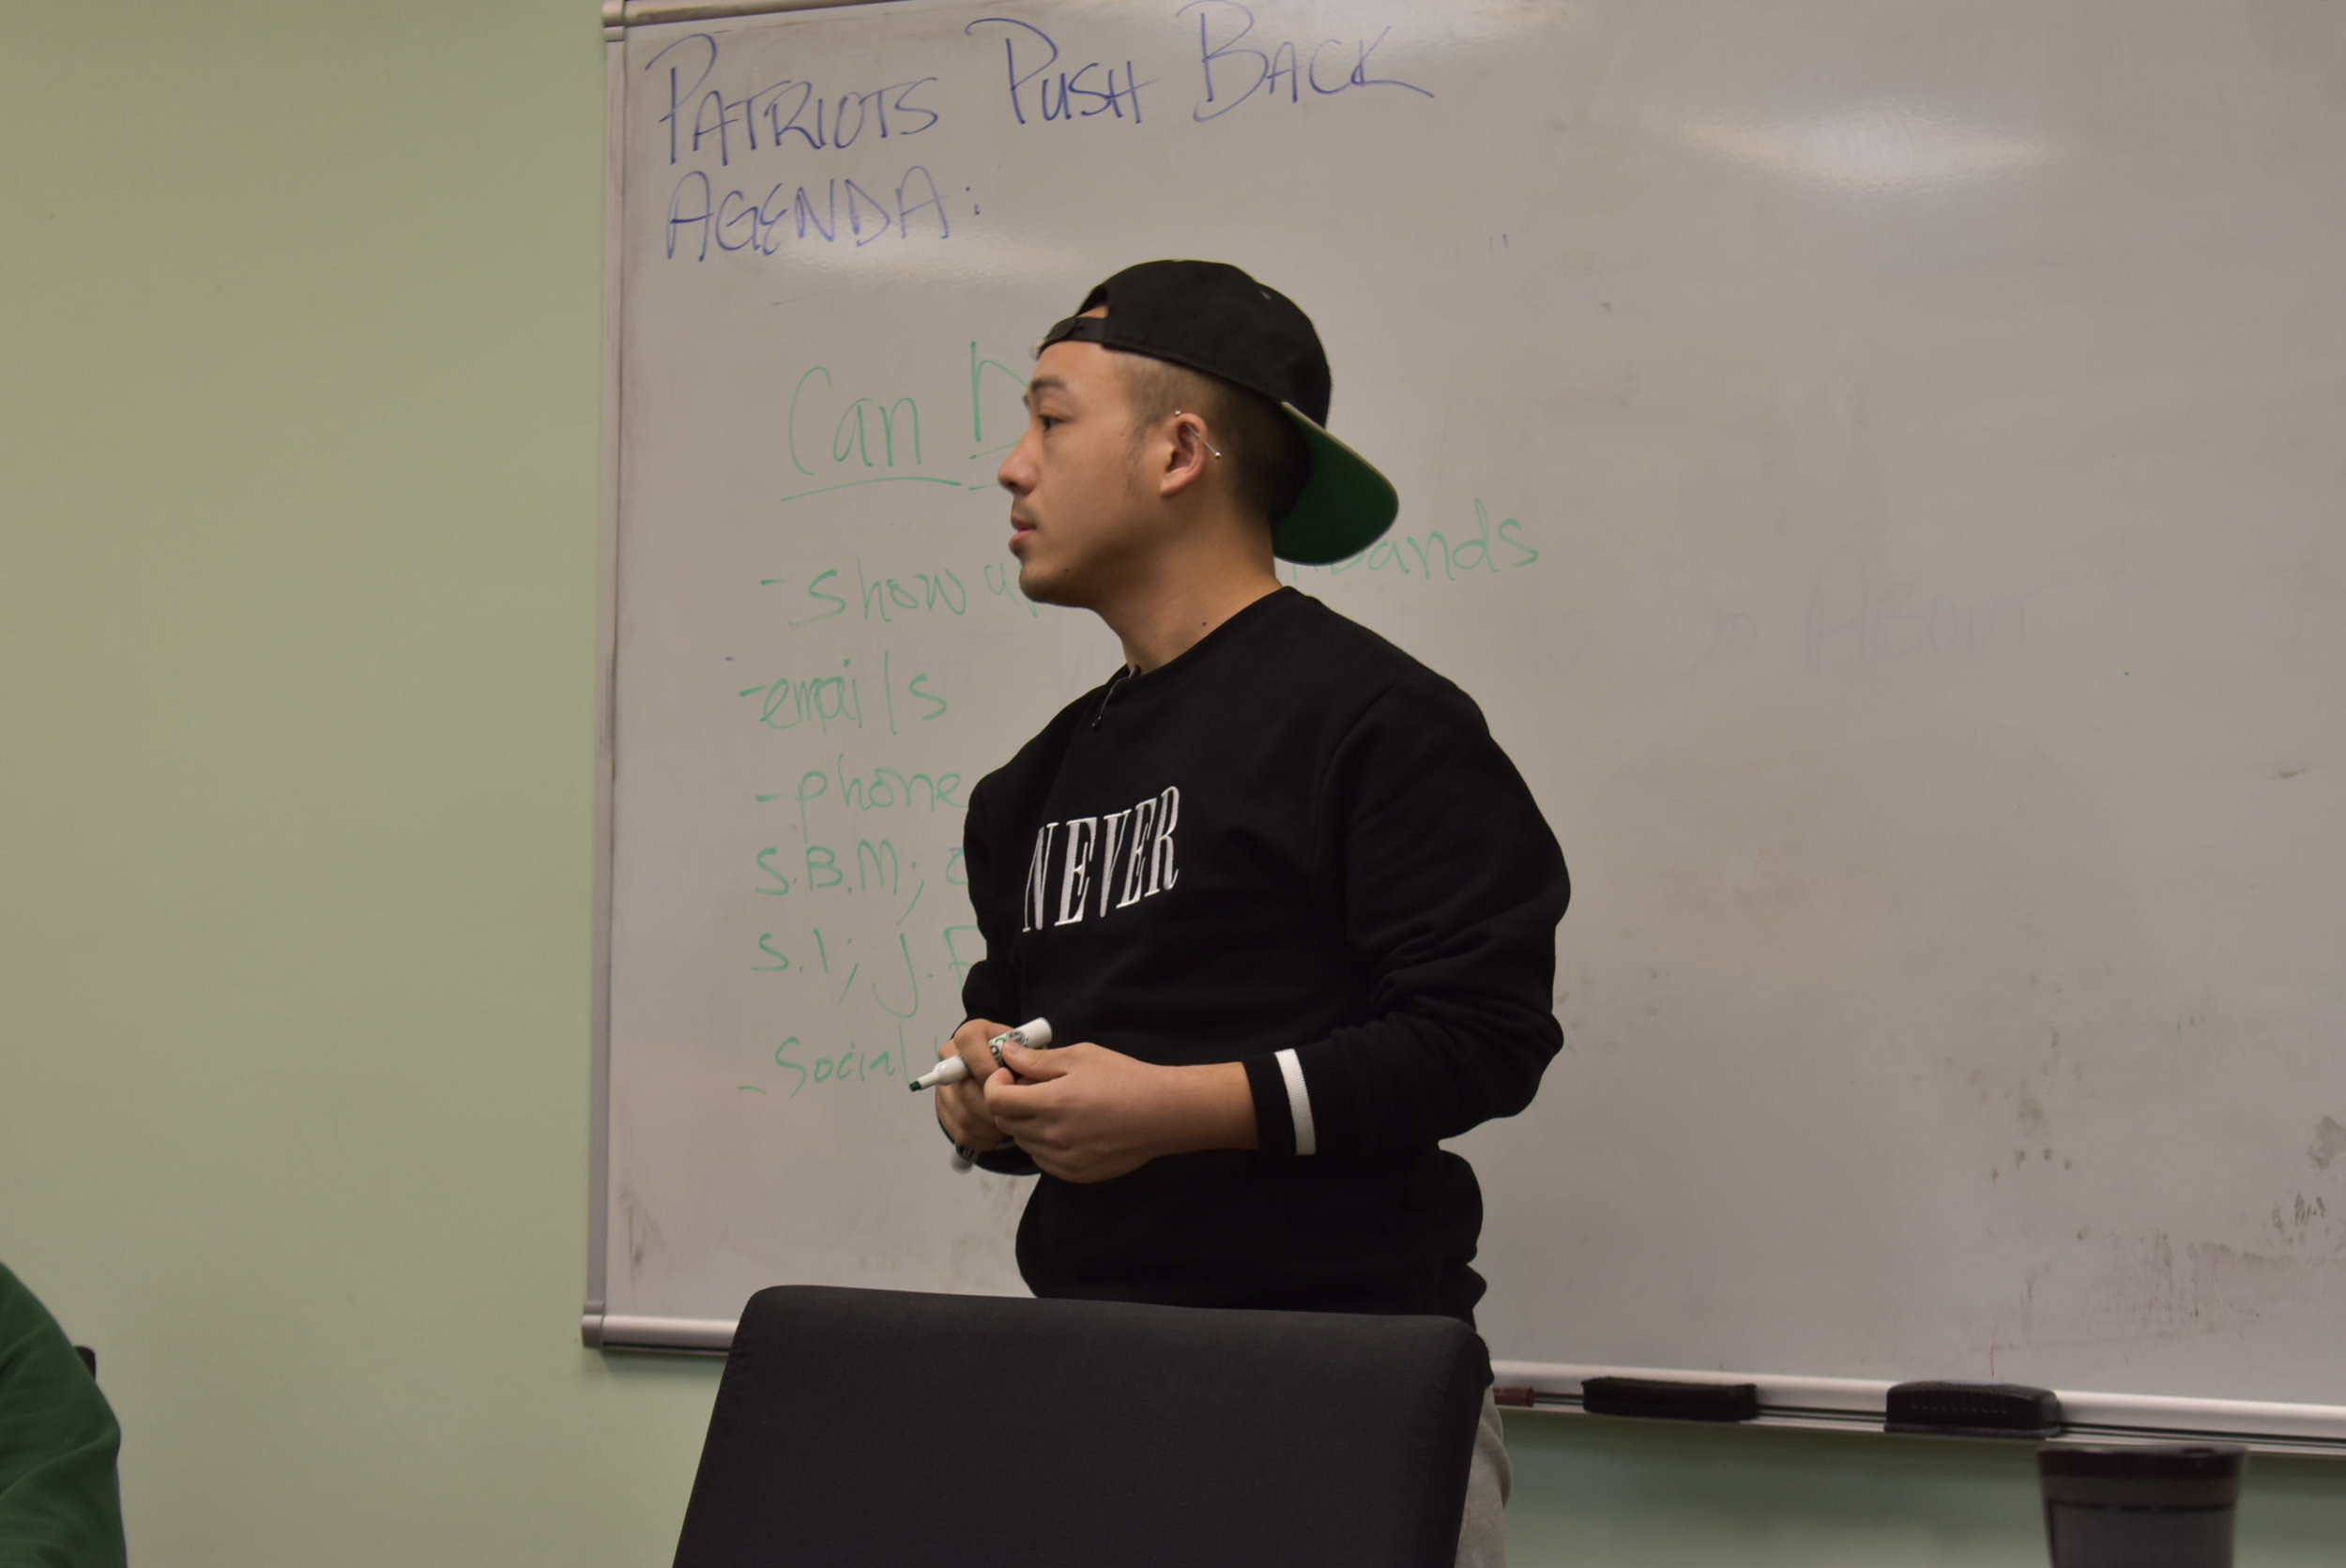 Chong Vang, a Patrick Henry High School (PHHS) graduate, co-facilitated a March 17 meeting among community members to discuss the potential impact of $1.9 million in budget cuts at his alma mater.The meeting was held at the Minneapolis Federation of Teachers building (67 8th Ave. NE). About 25 students, parents, and alumni came out to support teachers and express their frustration over the proposed budget cuts. Photo by Cirien Saadeh